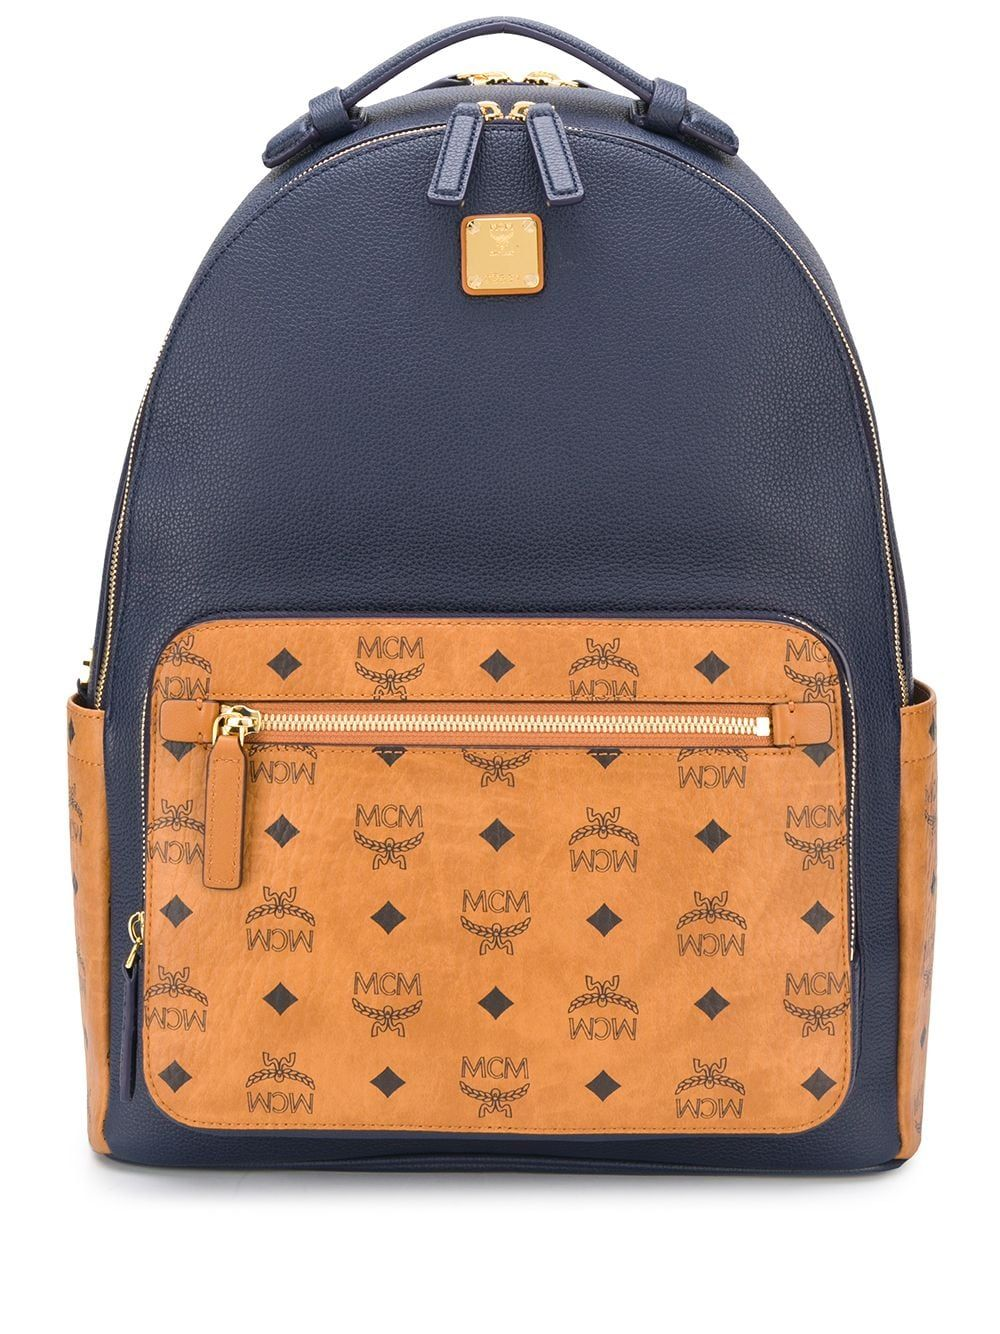 Mcm Leathers MCM WOMEN'S BLUE LEATHER BACKPACK